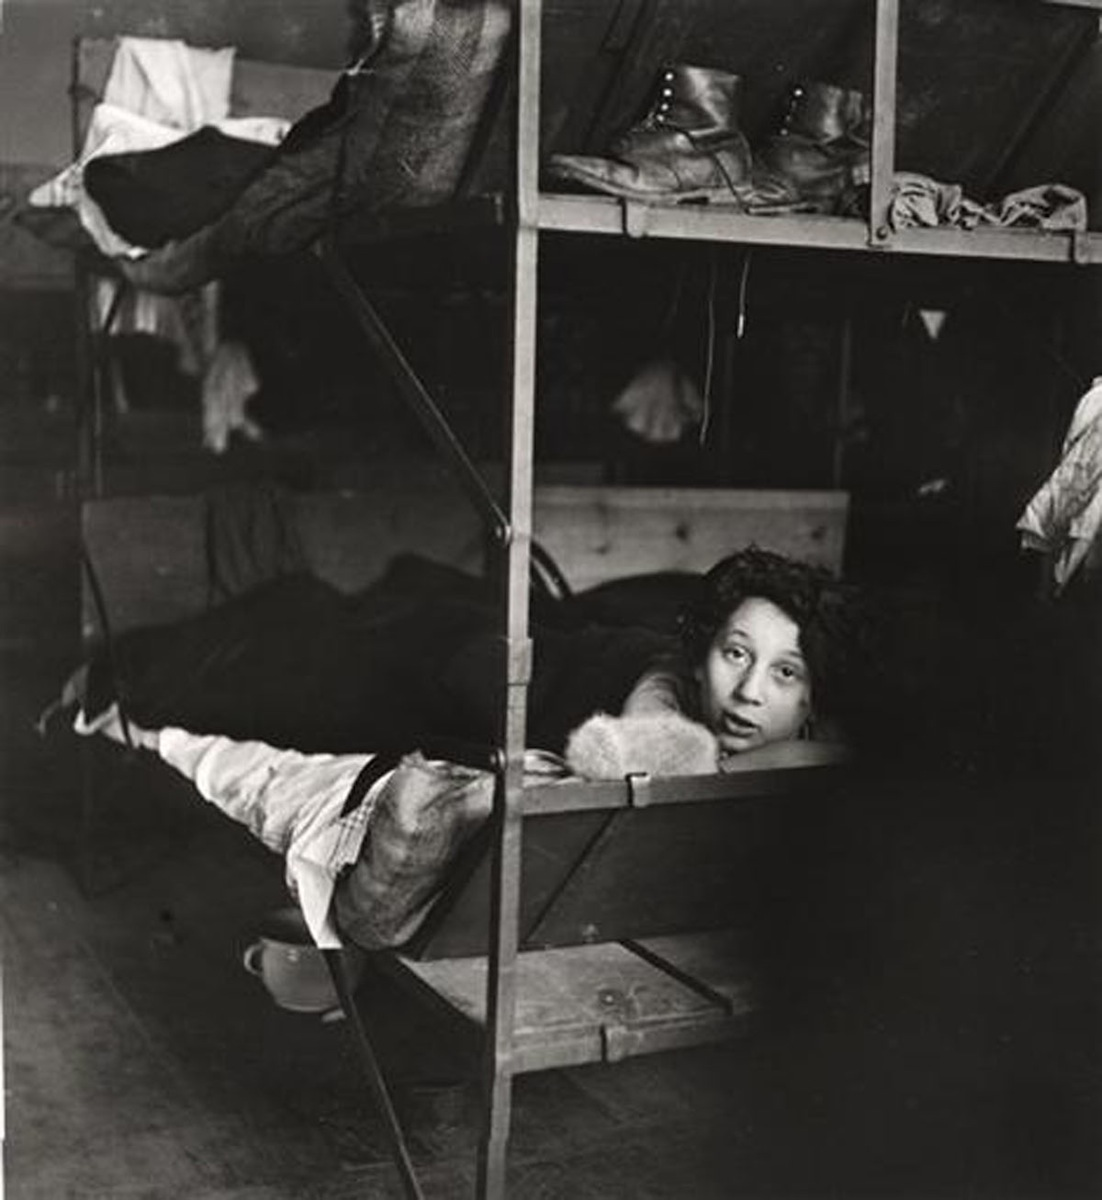 Nettie Stub (1938) photograph by Roman Vishniac © Mara Vishniac Kohn. Courtesy International Center of Photography